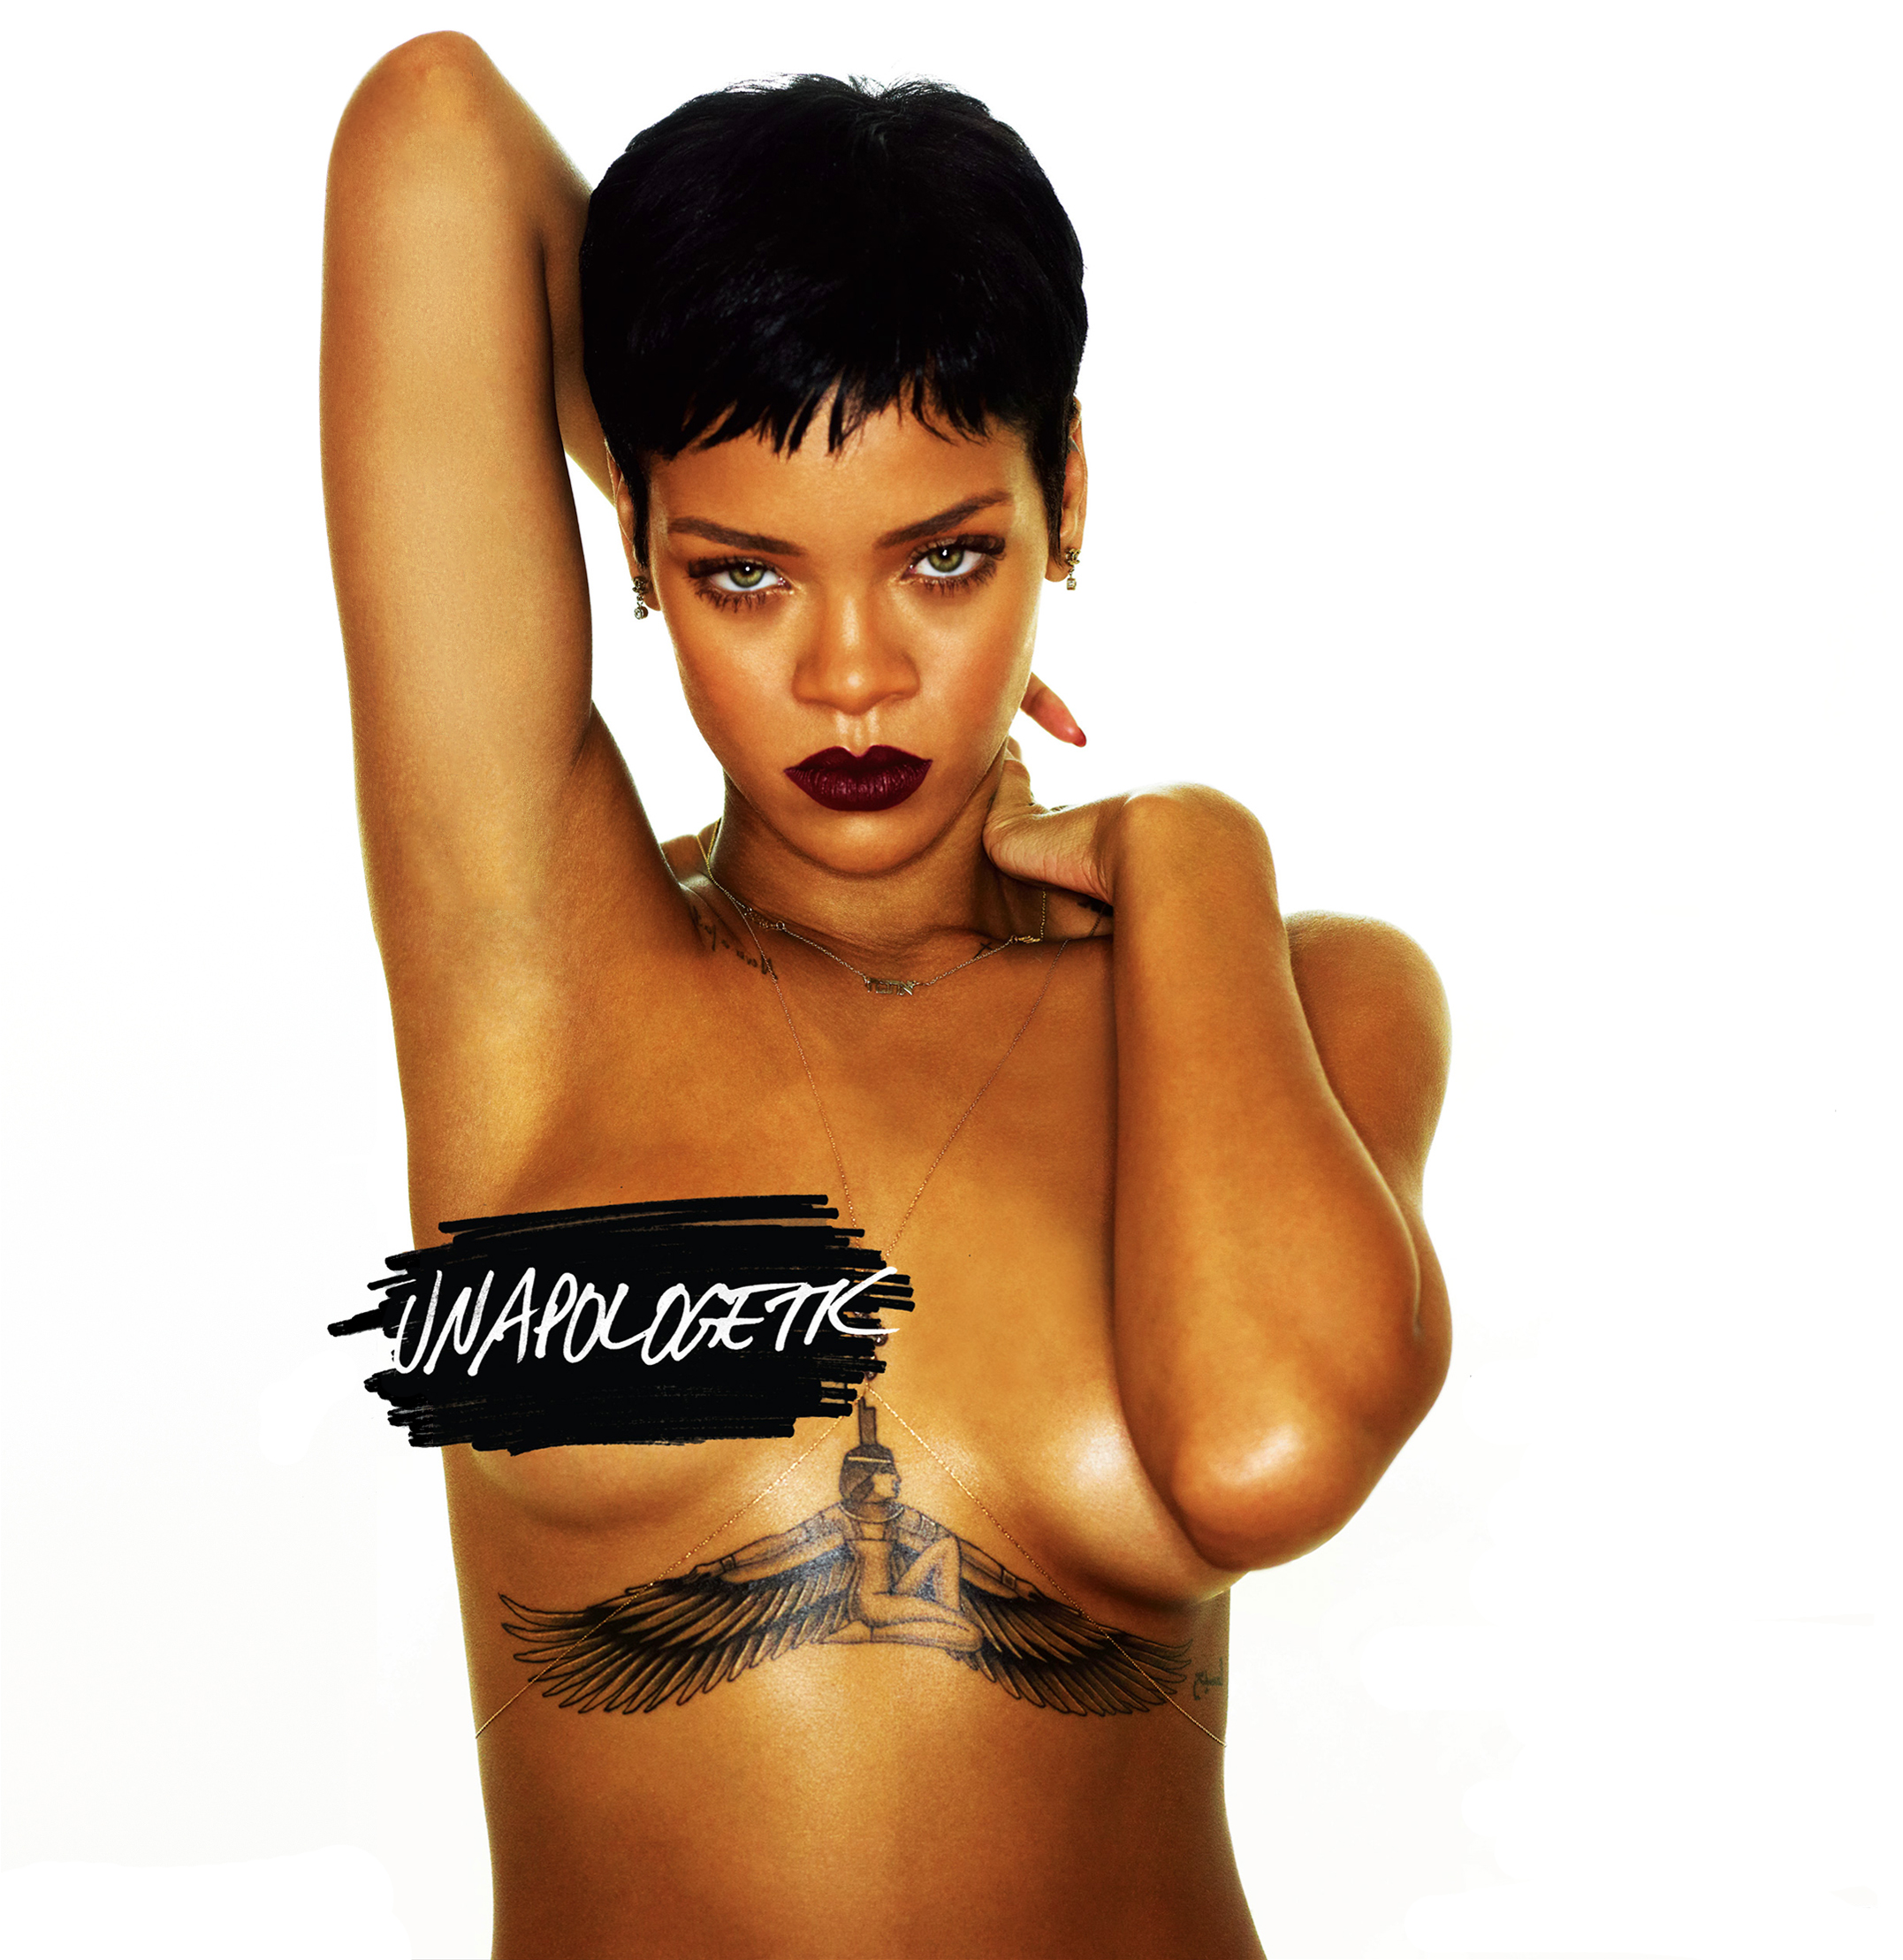 43e475fecbe7de7c72b76ff1191d3833 Rihanna Crowned Rock Star Of The Year